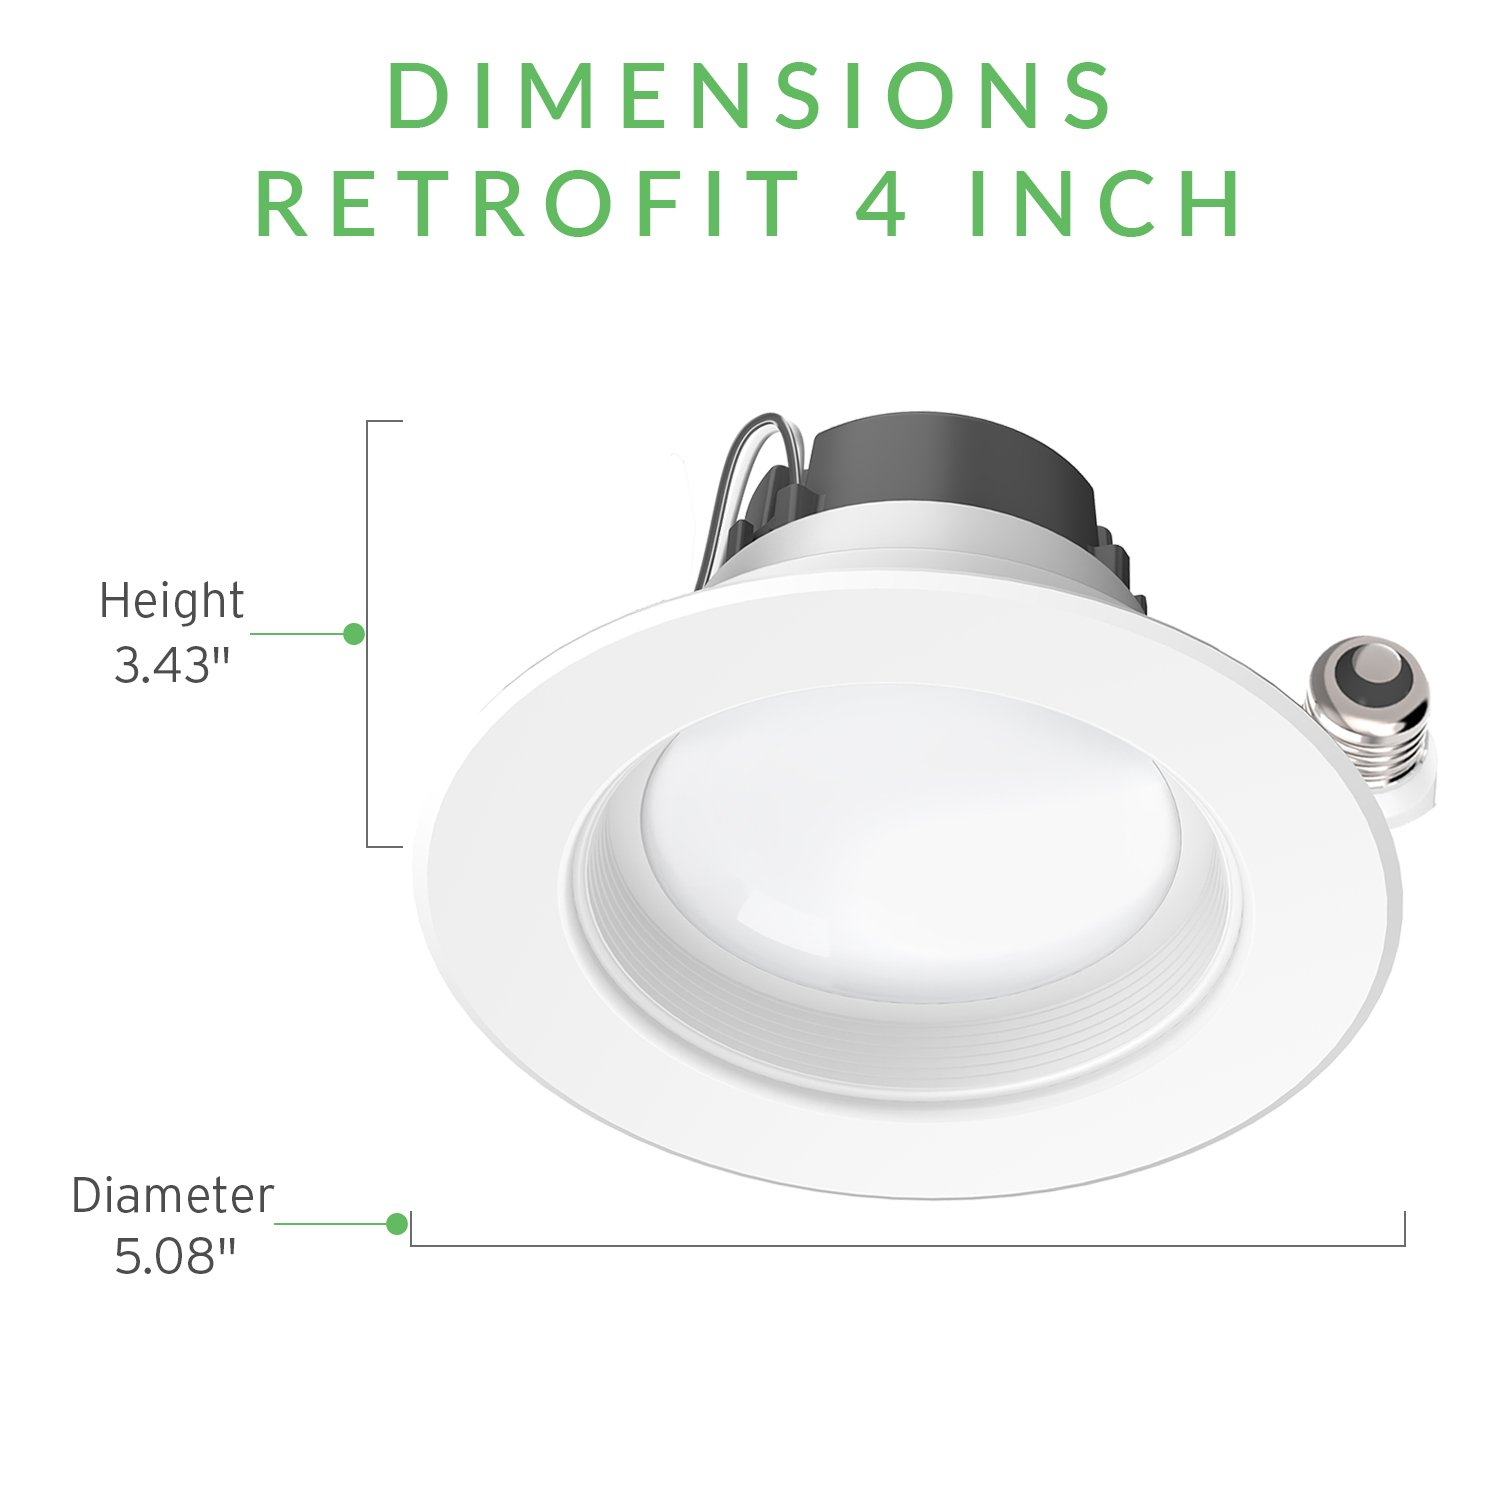 Sunco Lighting 6 Pack 4 Inch Baffle Recessed Retrofit Kit Dimmable LED Light, 11W (40W Replacement), 3000K Kelvin Warm White, Quick/Easy Can Install, 660 Lumen, Wet Rated by Sunco Lighting (Image #10)